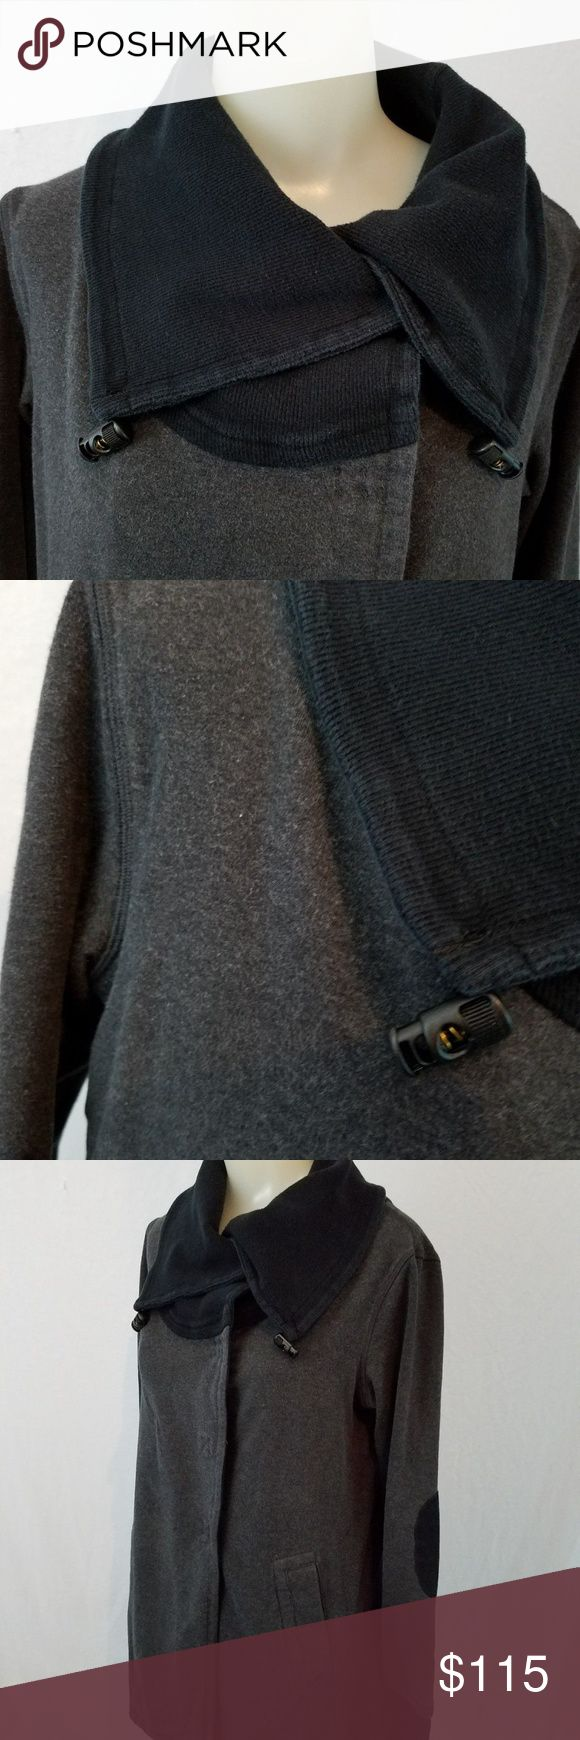 FLASH SALE ⚡️Lululemon Gratitude Jacket-SZ 4 Temperatures are dropping, and leaving the warm comfort of a yoga class can sometimes be uninviting. We designed this cozy cotton wrap to make the transition from Savasana to street a little easier. Complete with pockets, thumbholes, and an easy-to-layer fit, this wrap was built to keep the cold out and the warmth in. Some pilling throughout- see all photos . Preowned worn but life left. lululemon athletica Jackets & Coats